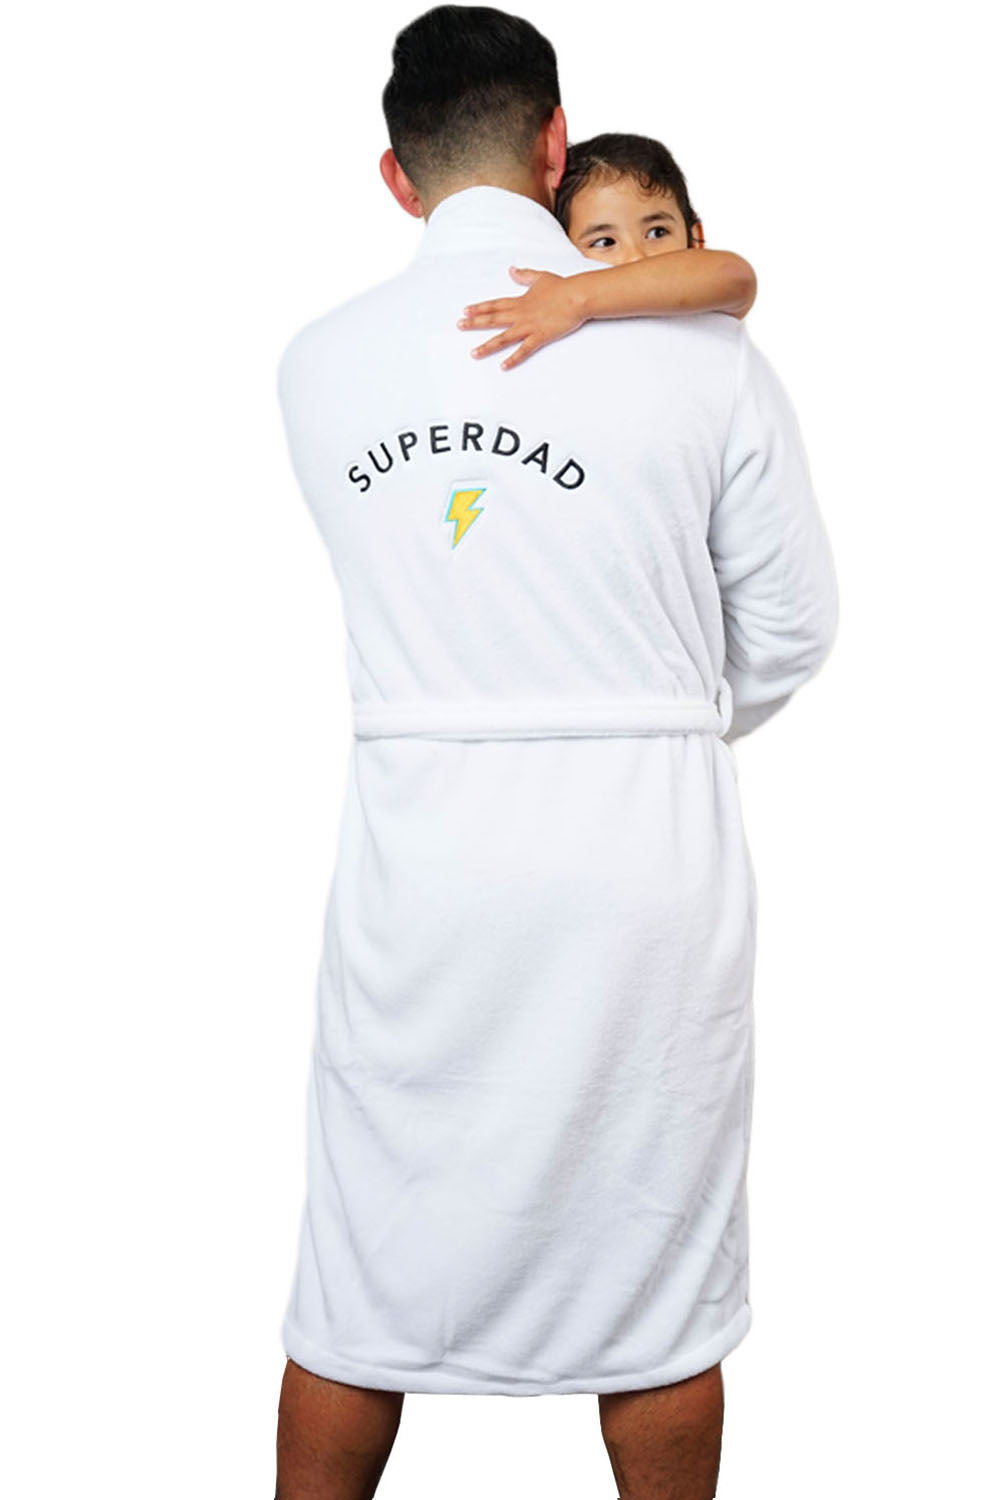 LUXE PLUSH ROBE - Superdad